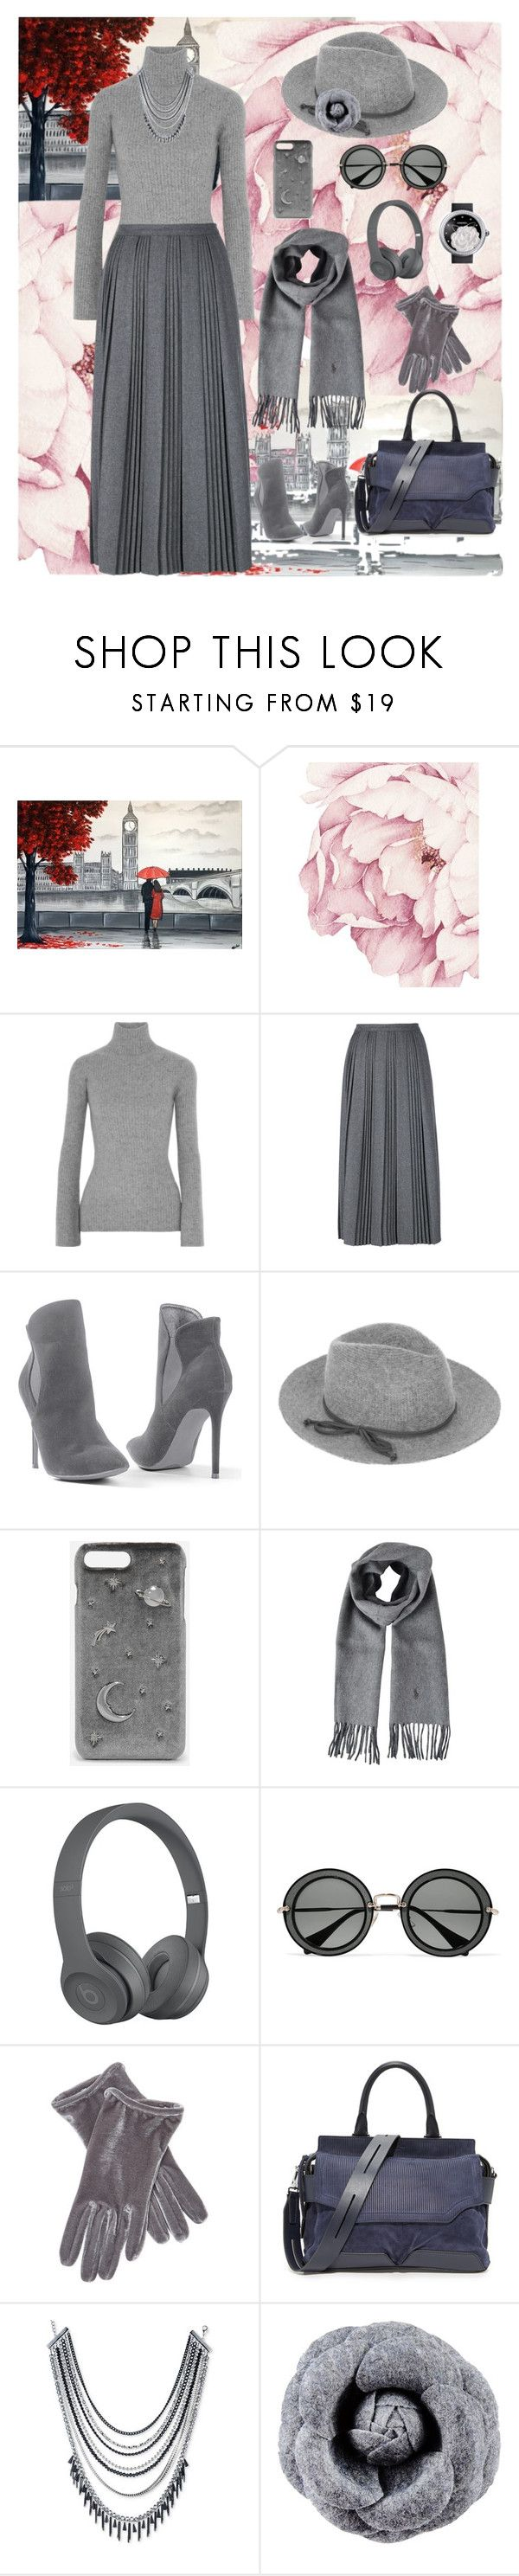 """""""The four seasons in Japan that change from autumn to winter are beautiful."""" by hiroko-eirai ❤ liked on Polyvore featuring Autumn Cashmere, RED Valentino, Venus, Accessorize, CHARLES & KEITH, Polo Ralph Lauren, Miu Miu, Portolano, rag & bone and ABS by Allen Schwartz"""